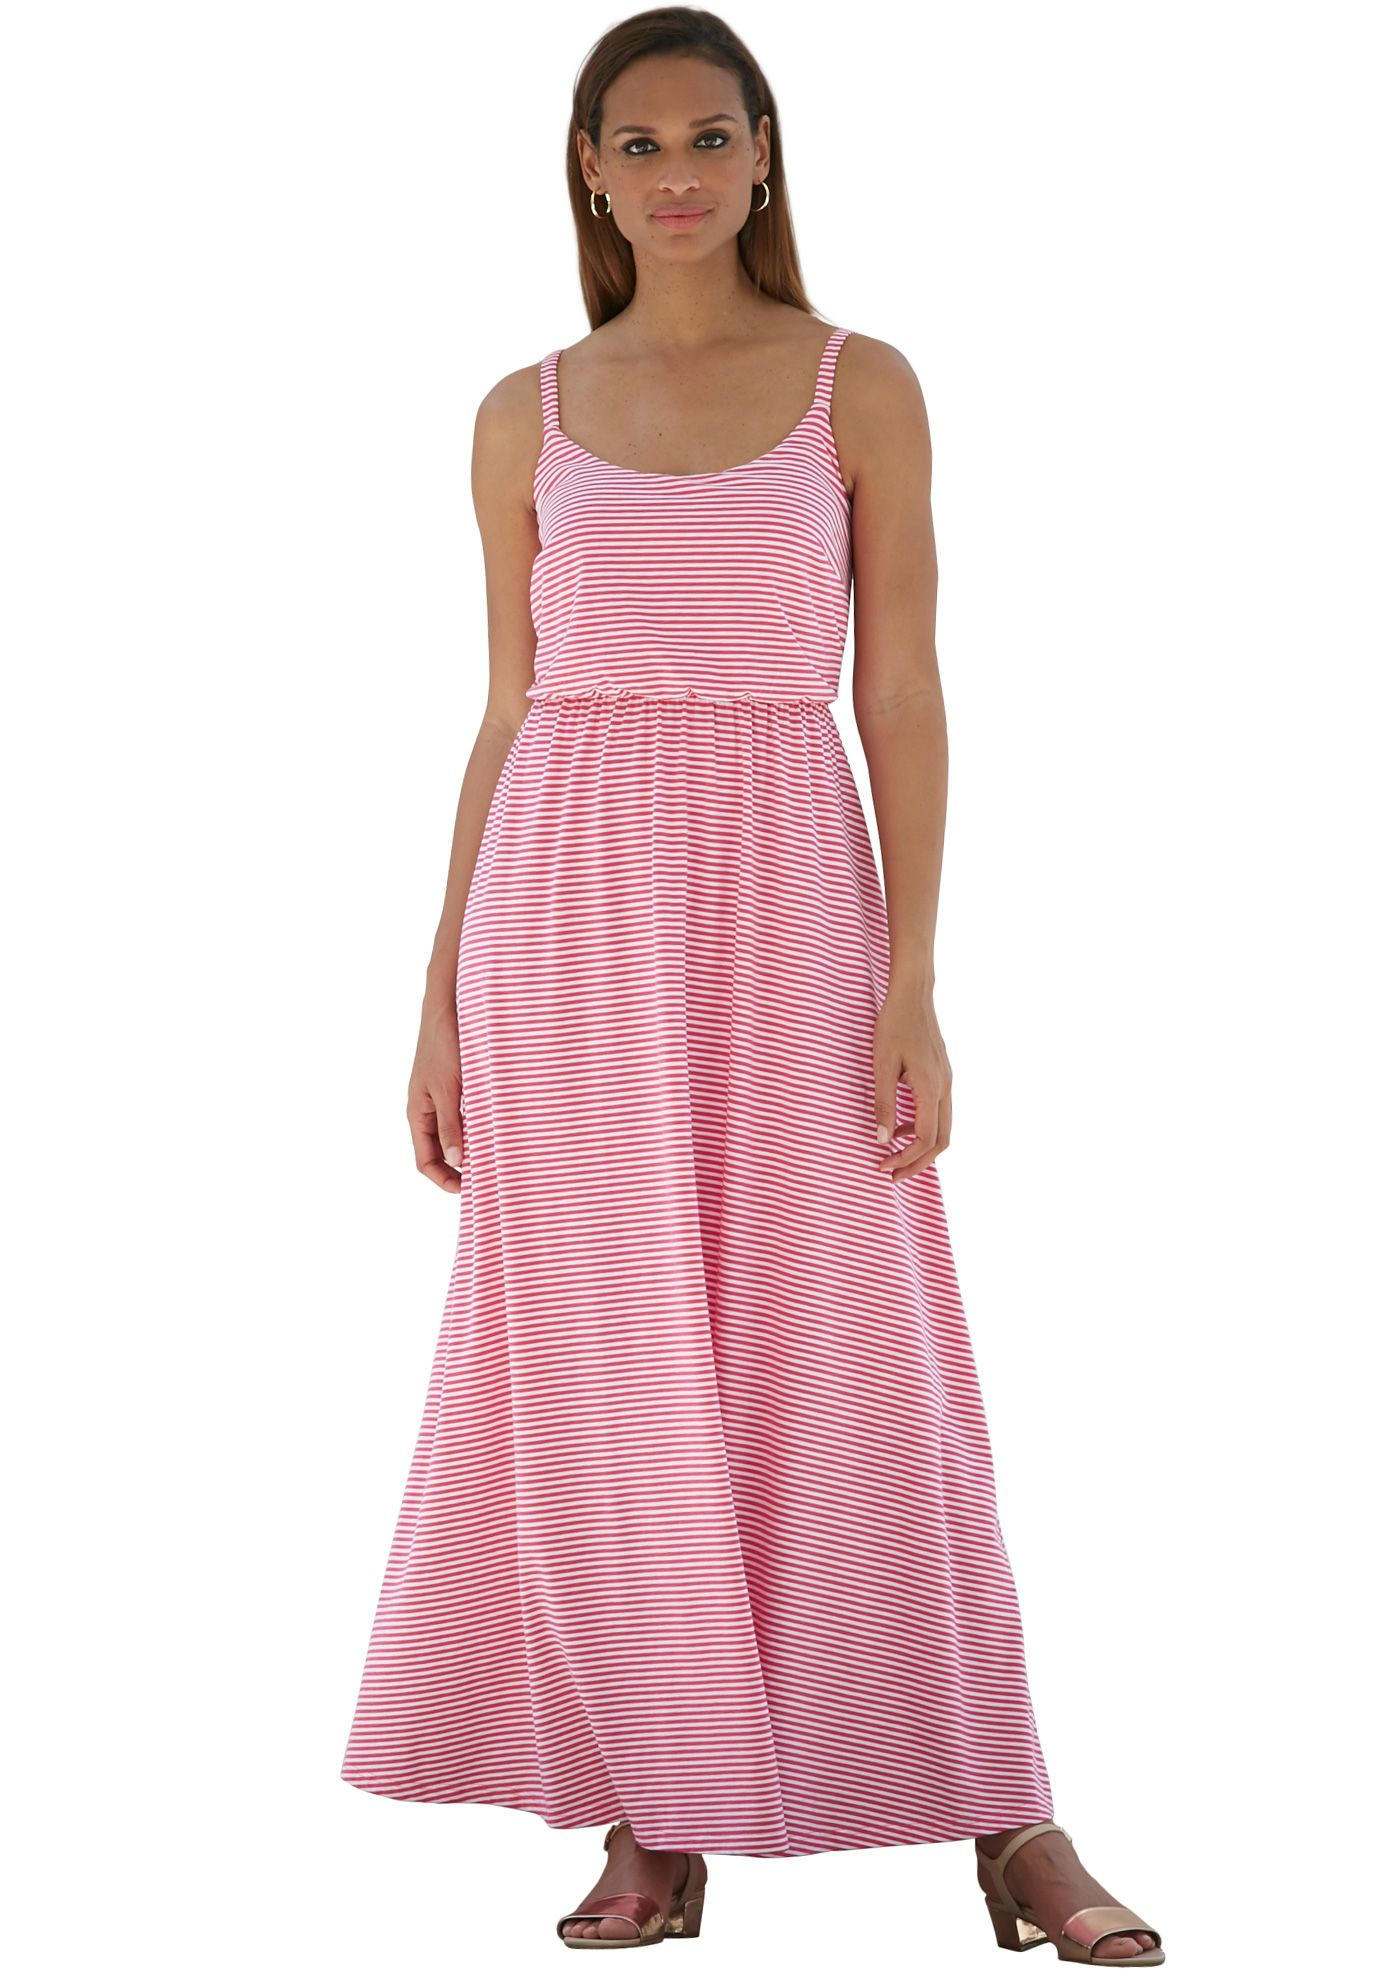 Jessica londonus blouson maxi dress is perfect for a summer soiree